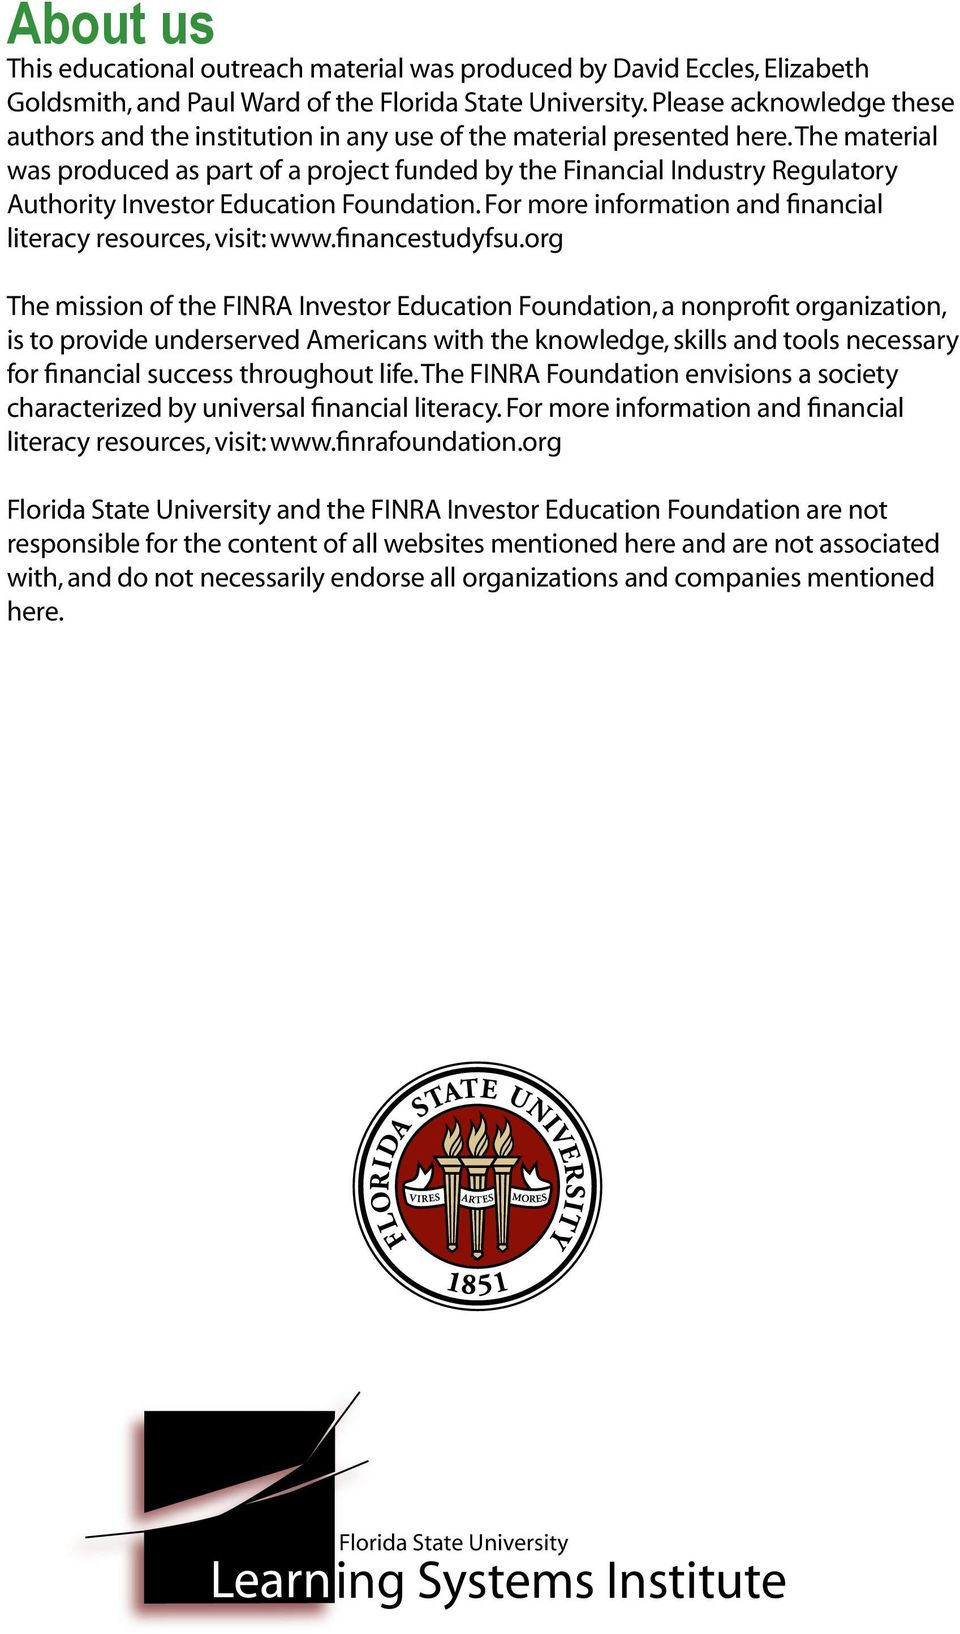 The material was produced as part of a project funded by the Financial Industry Regulatory Authority Investor Education Foundation. For more and literacy resources, visit: www.financestudyfsu.